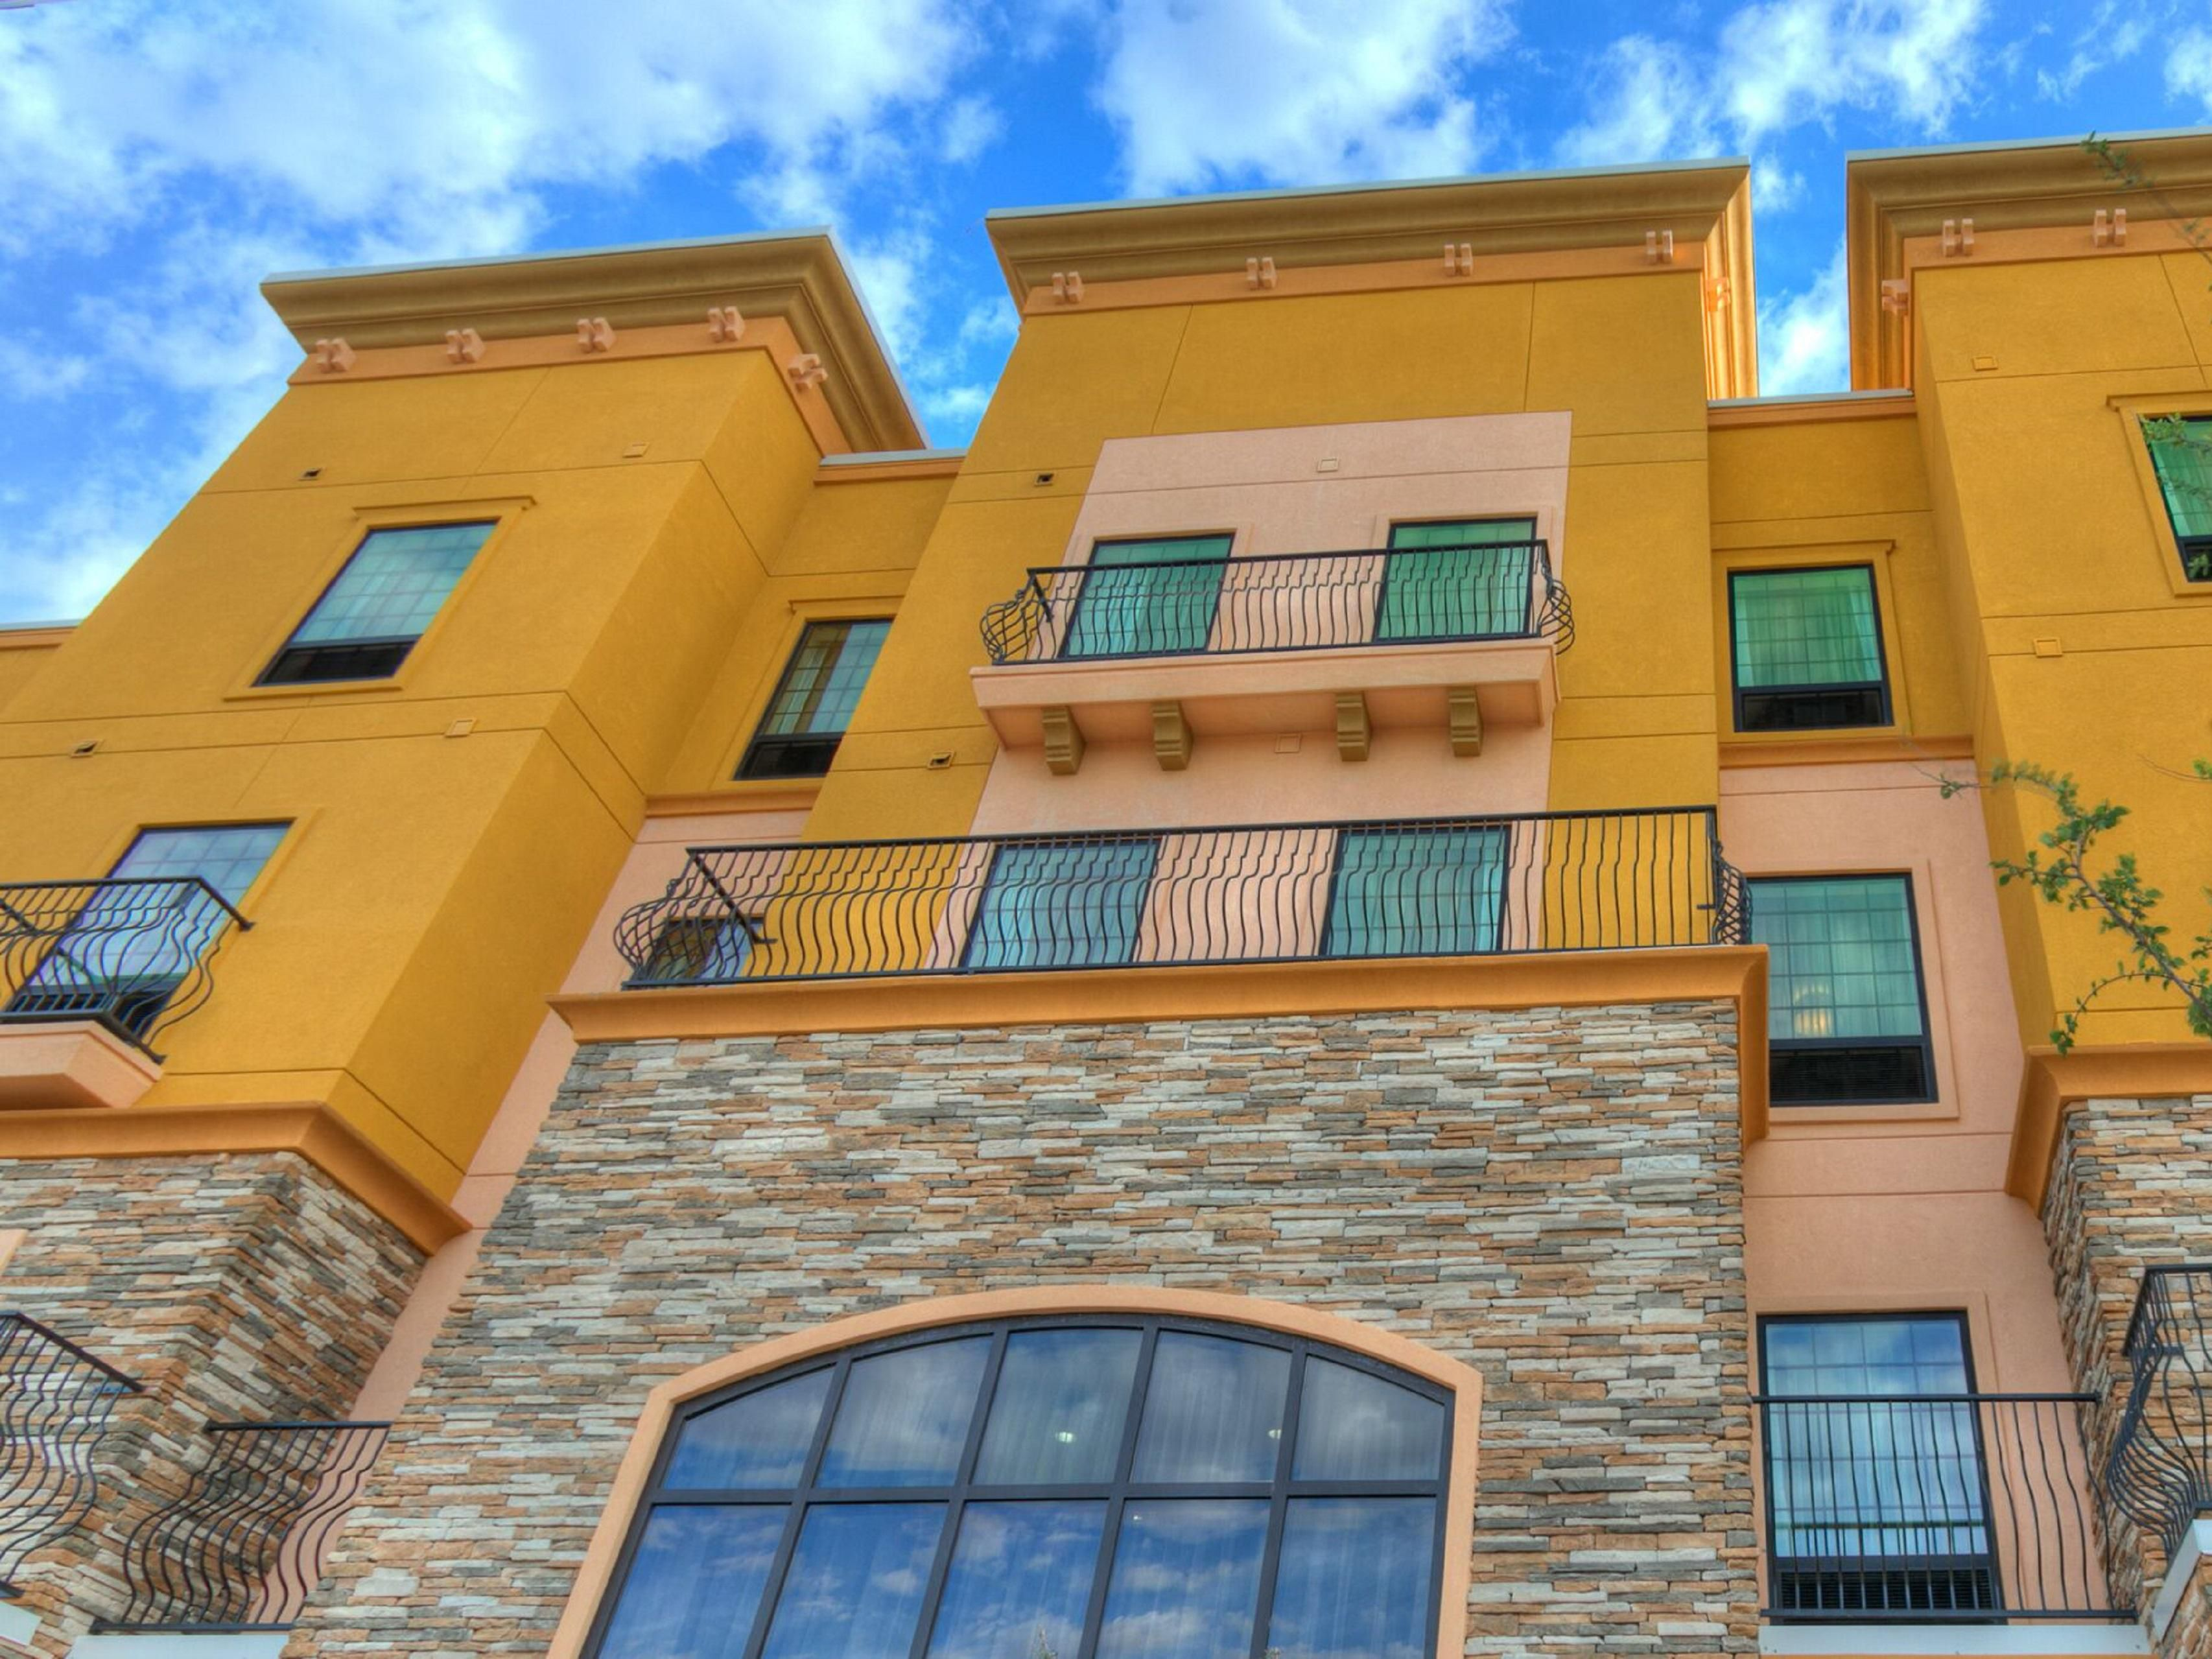 Holiday Inn Express Lubbock Hotels | Budget Hotels in